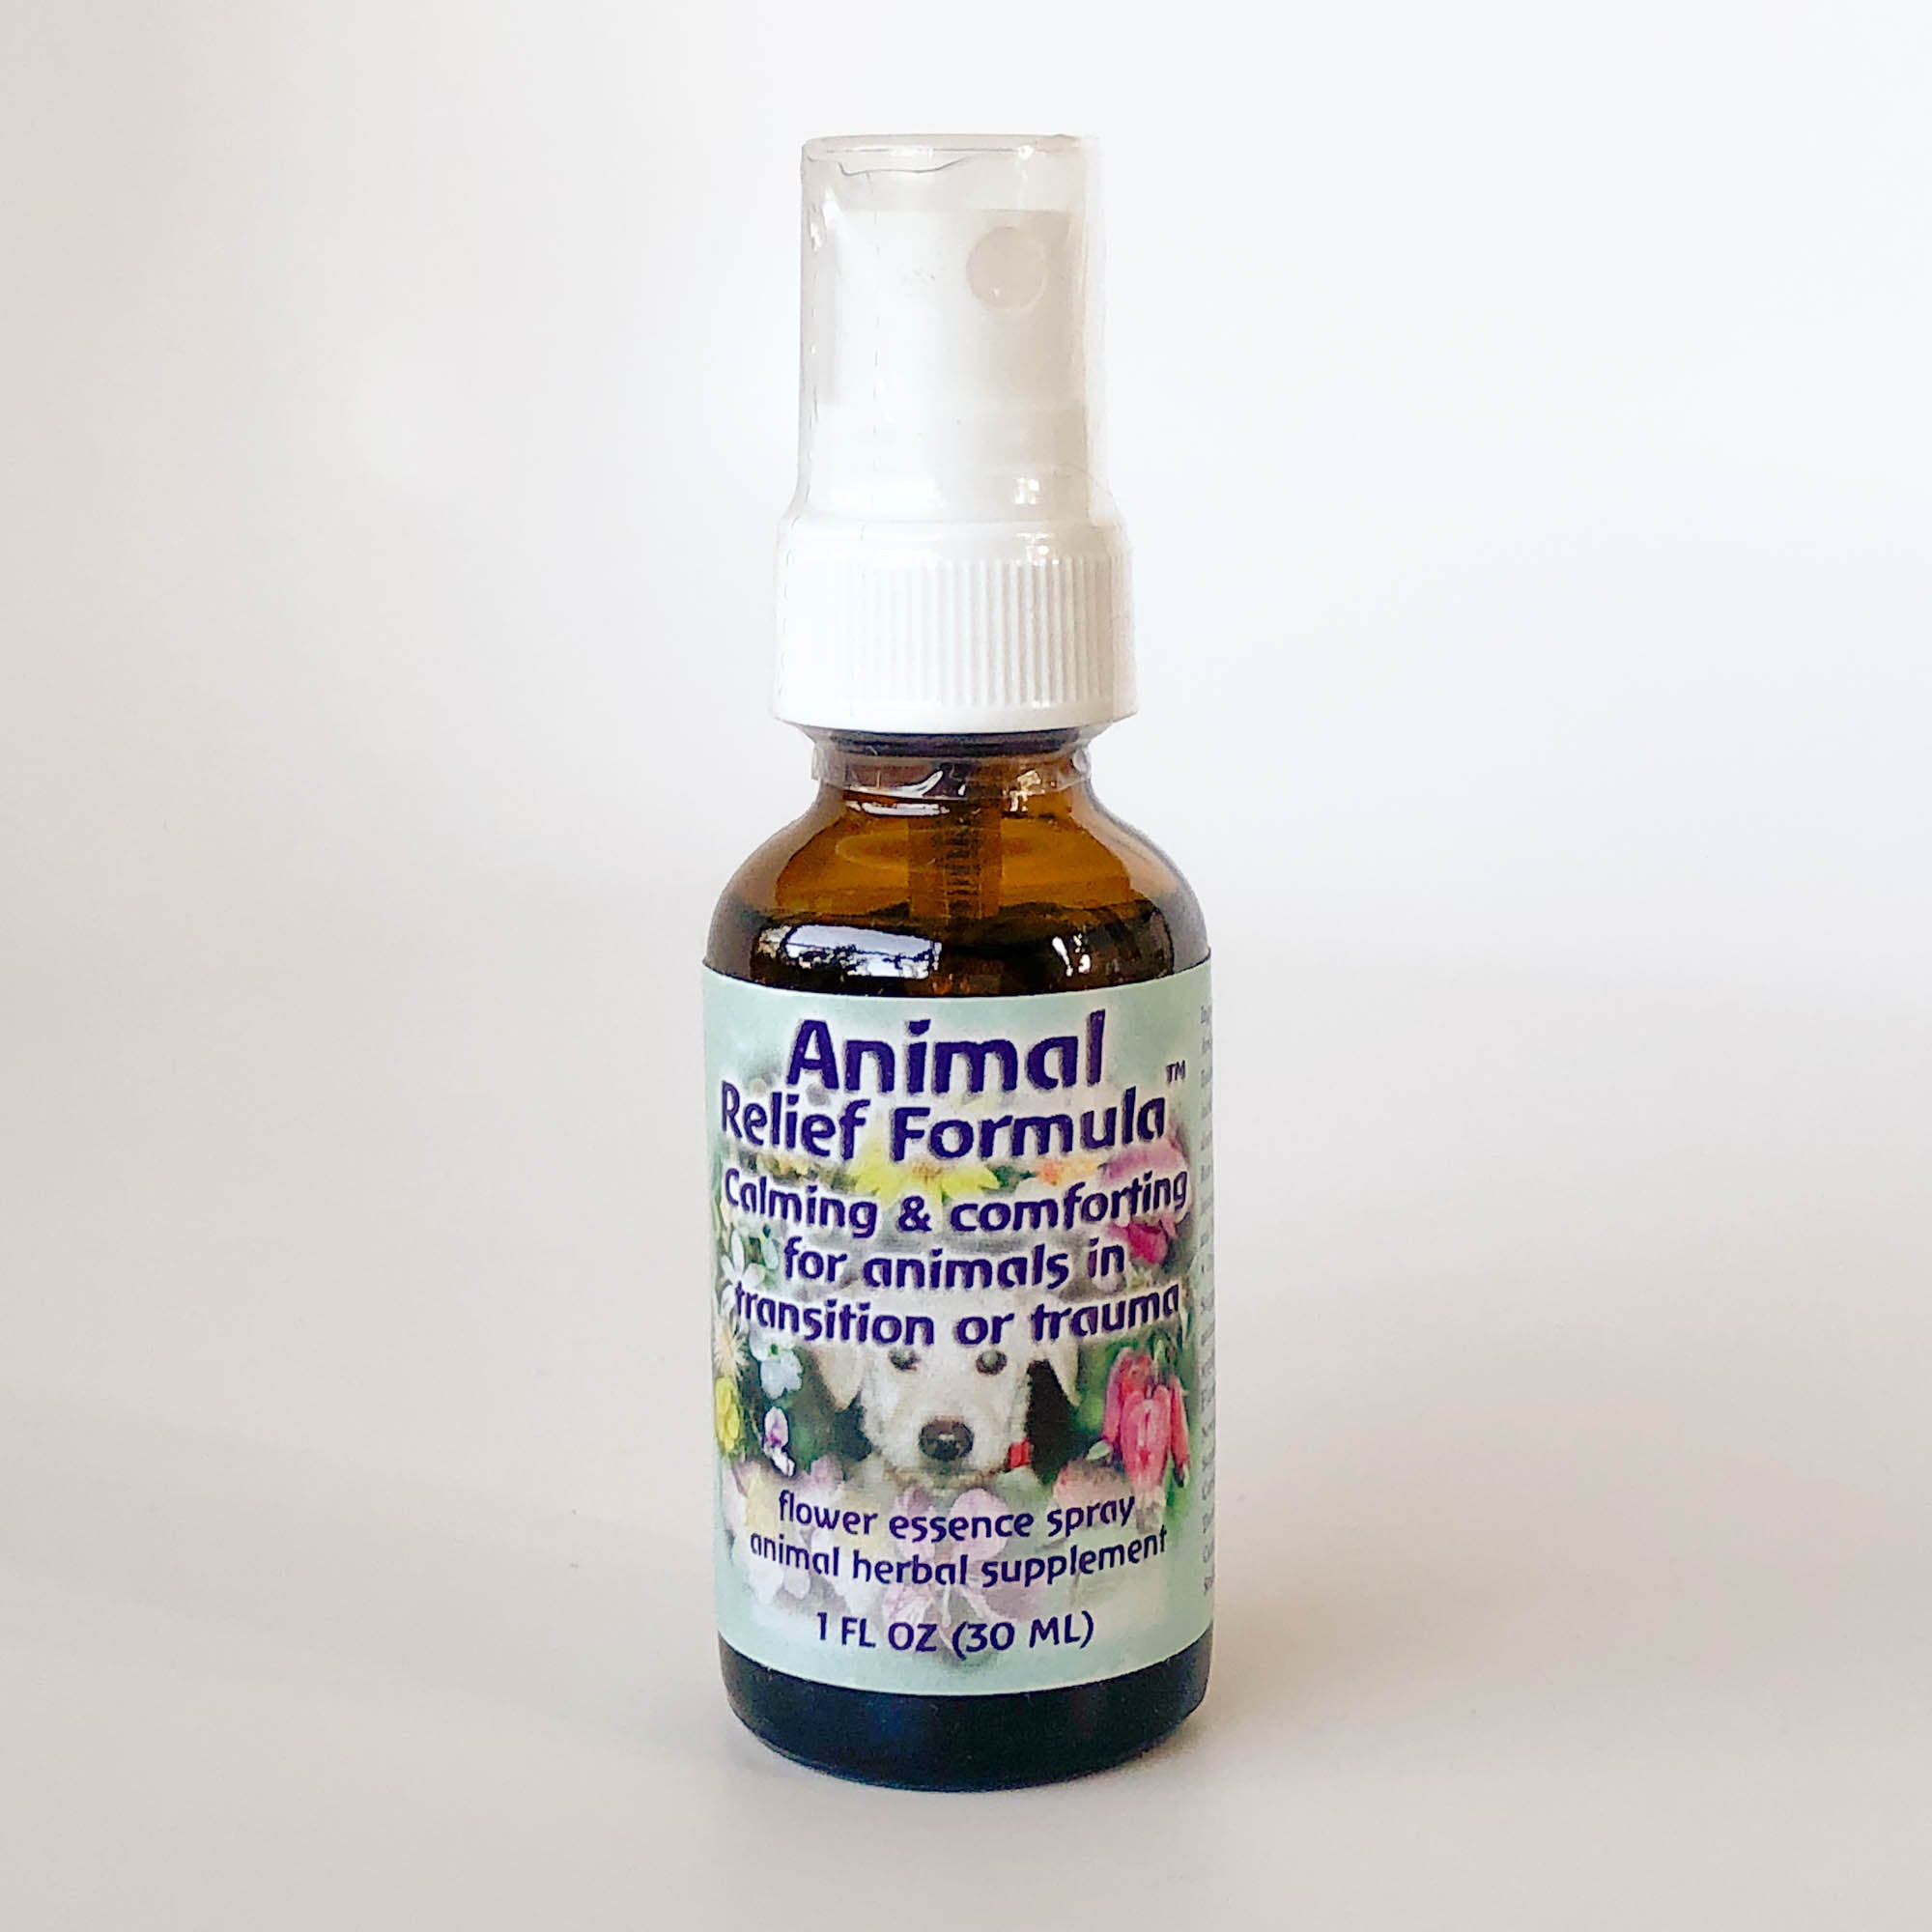 Animal Relief Formula flower essence